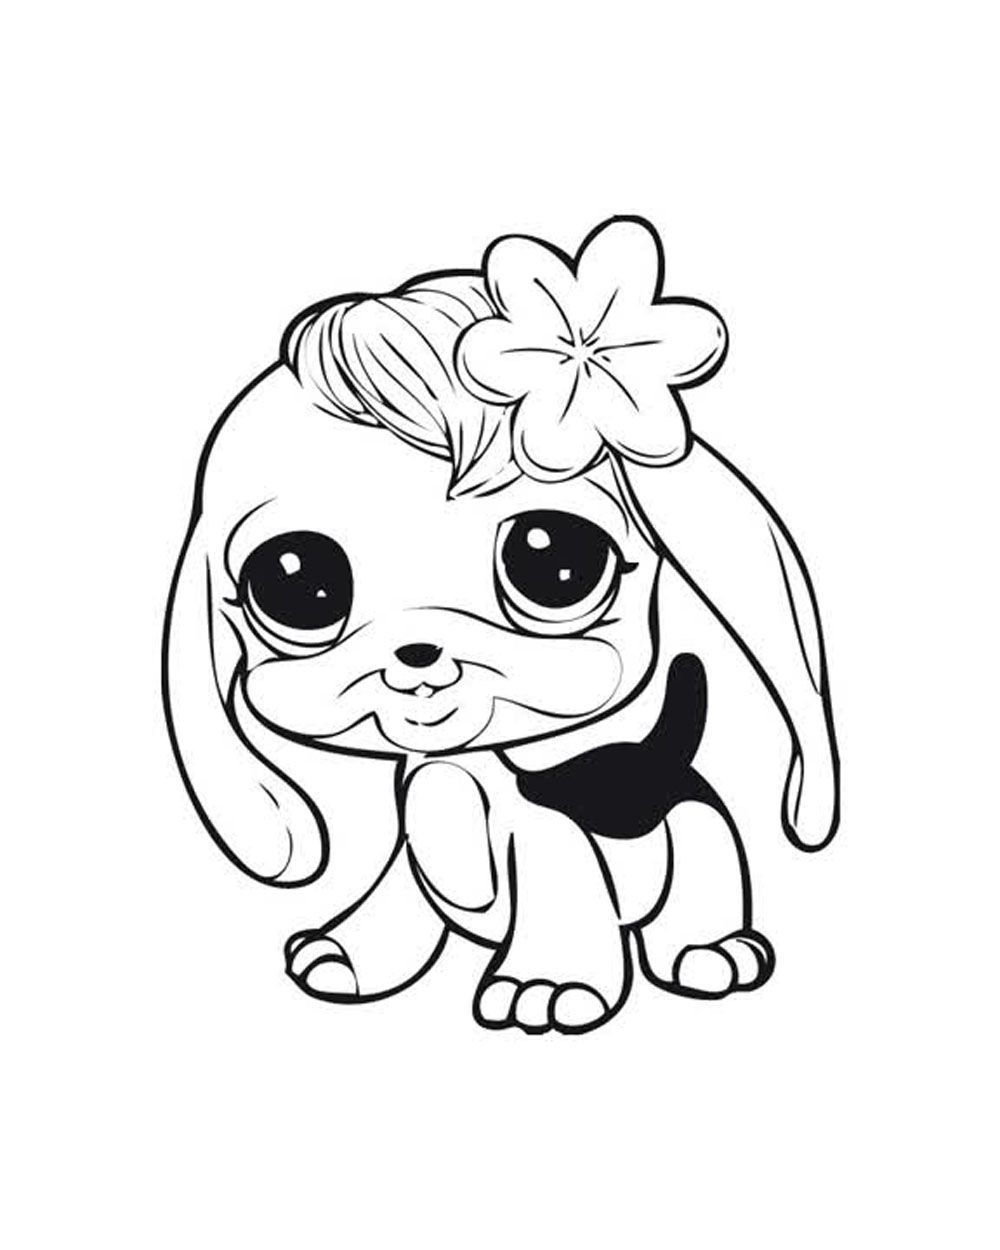 Littlest Pet Shop Coloring Pages Inspiring - Coloring pages